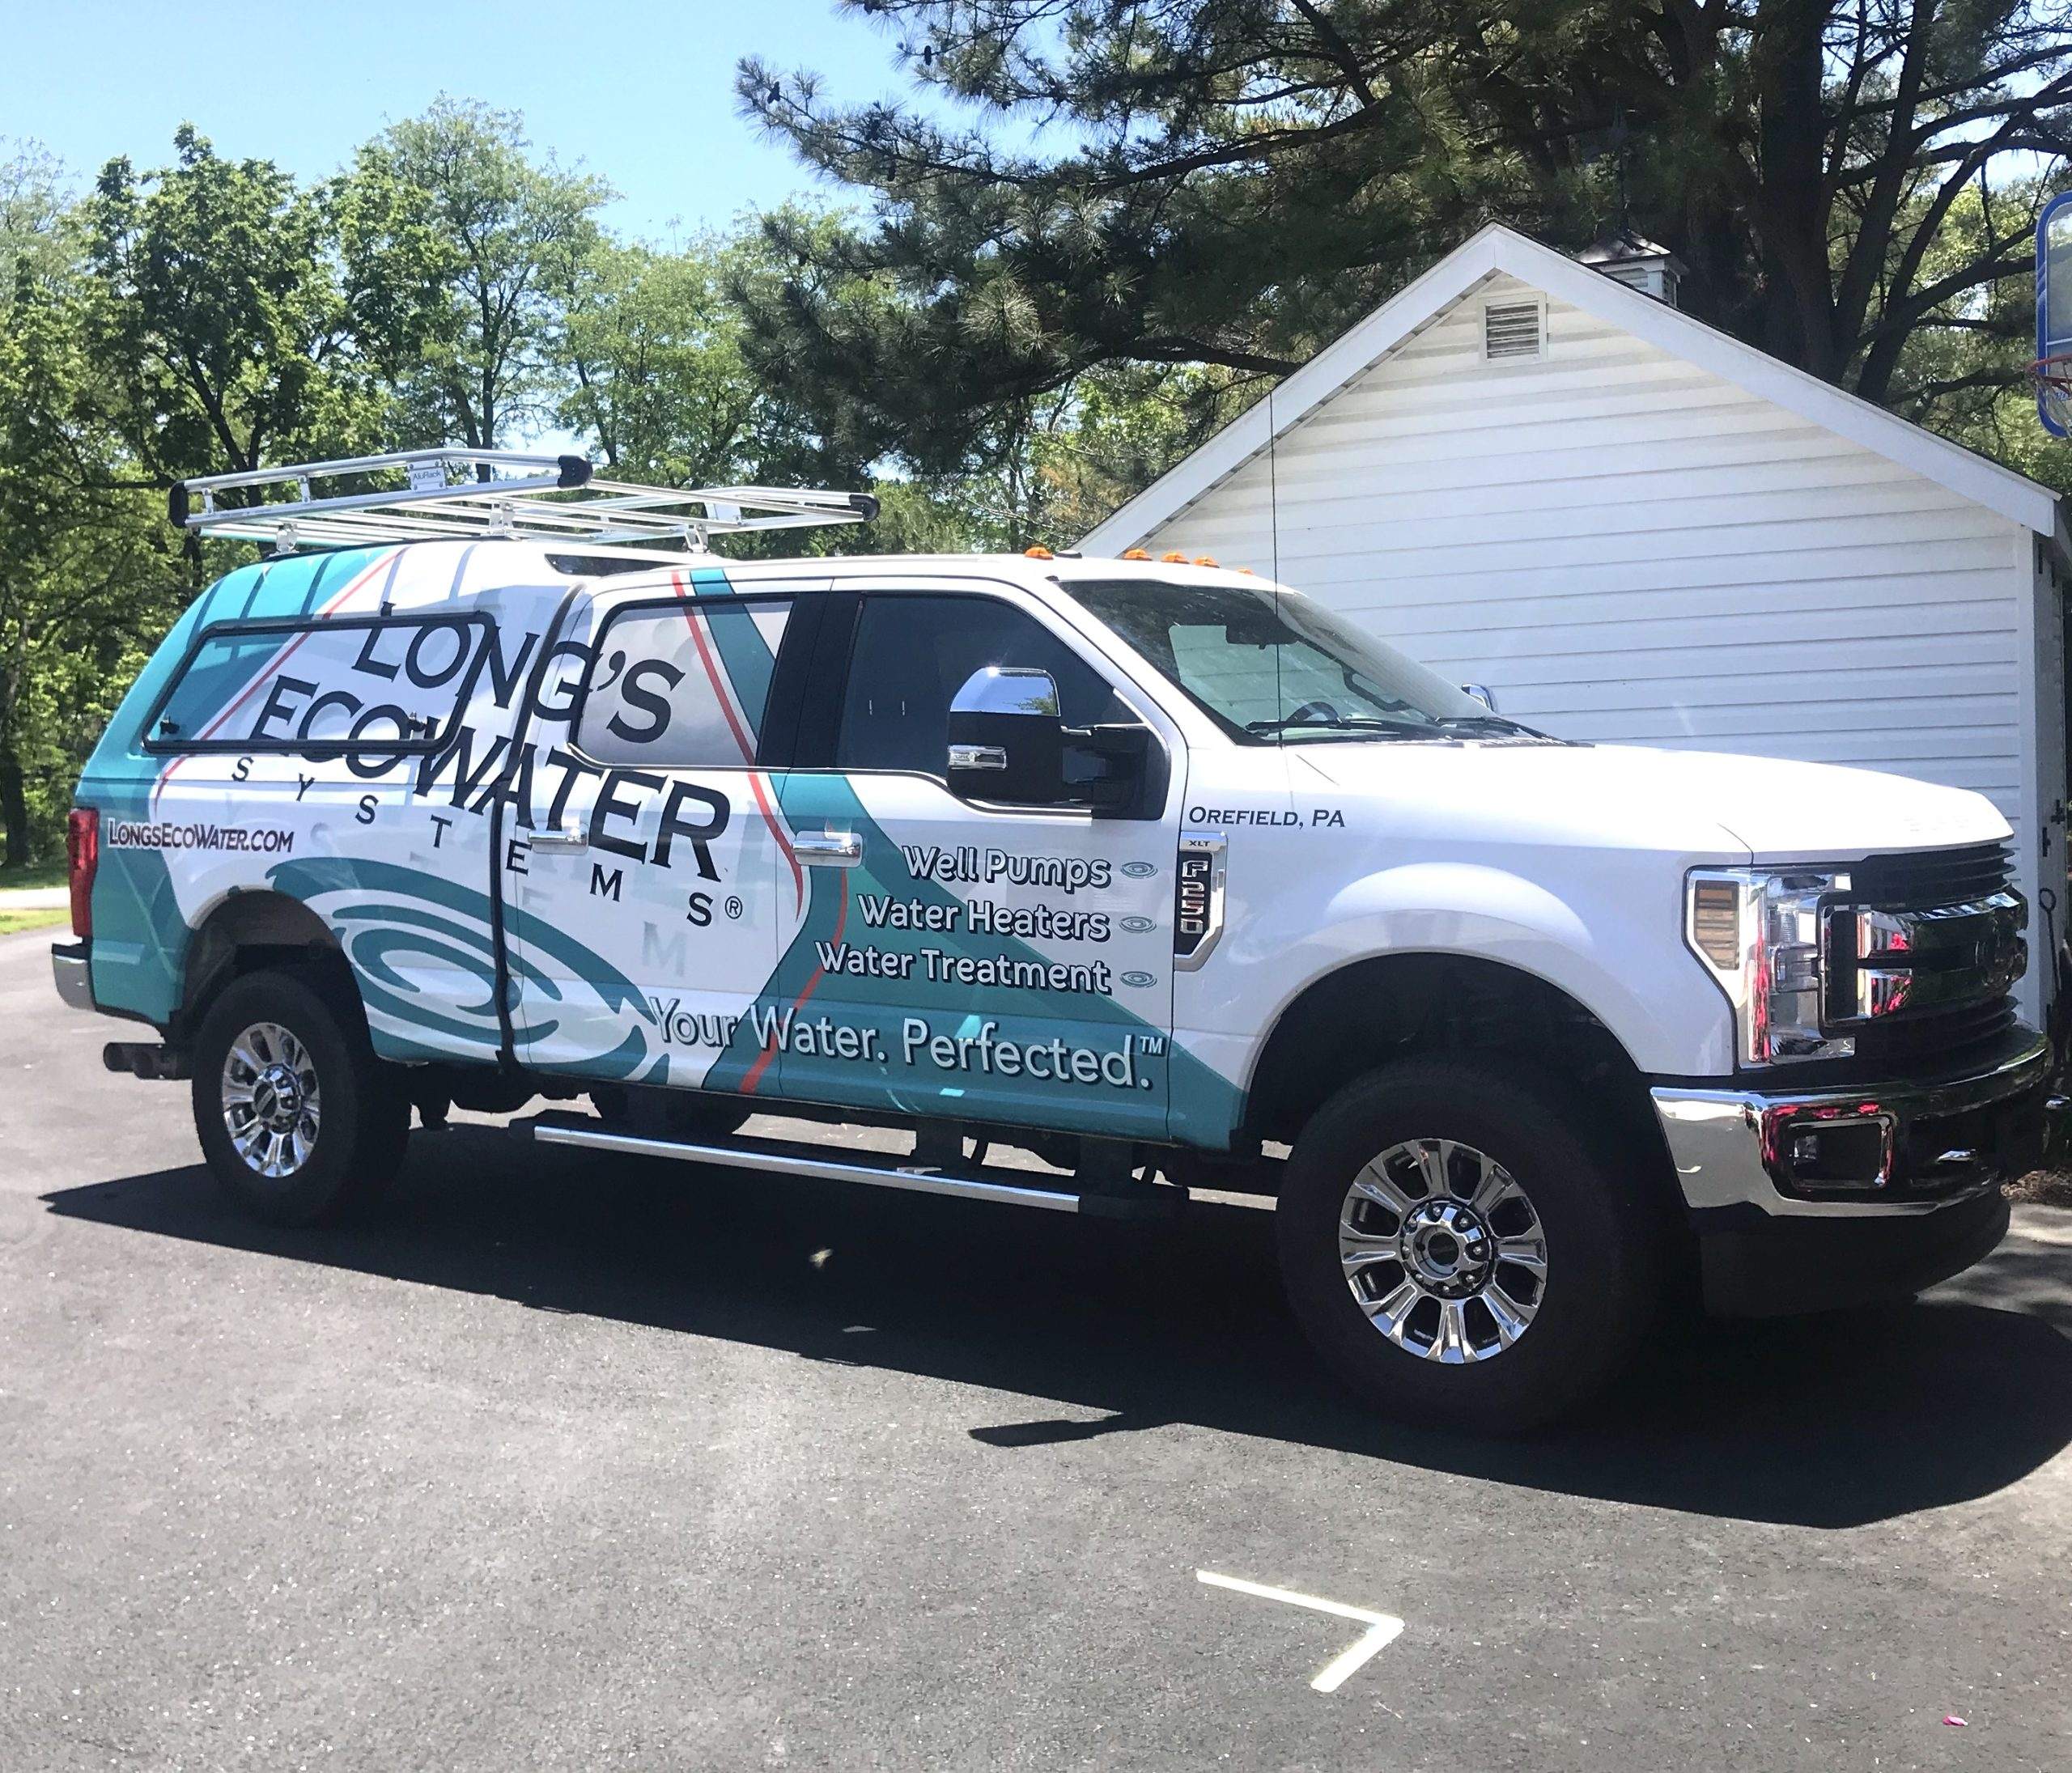 Long's EcoWater Truck